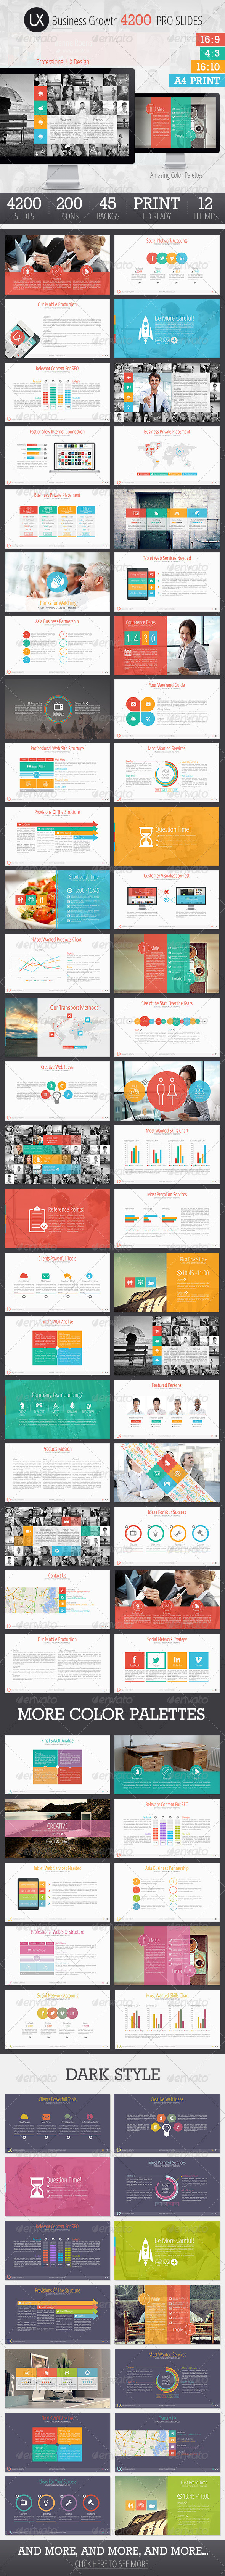 GraphicRiver UX Design Presentation Template 7505150